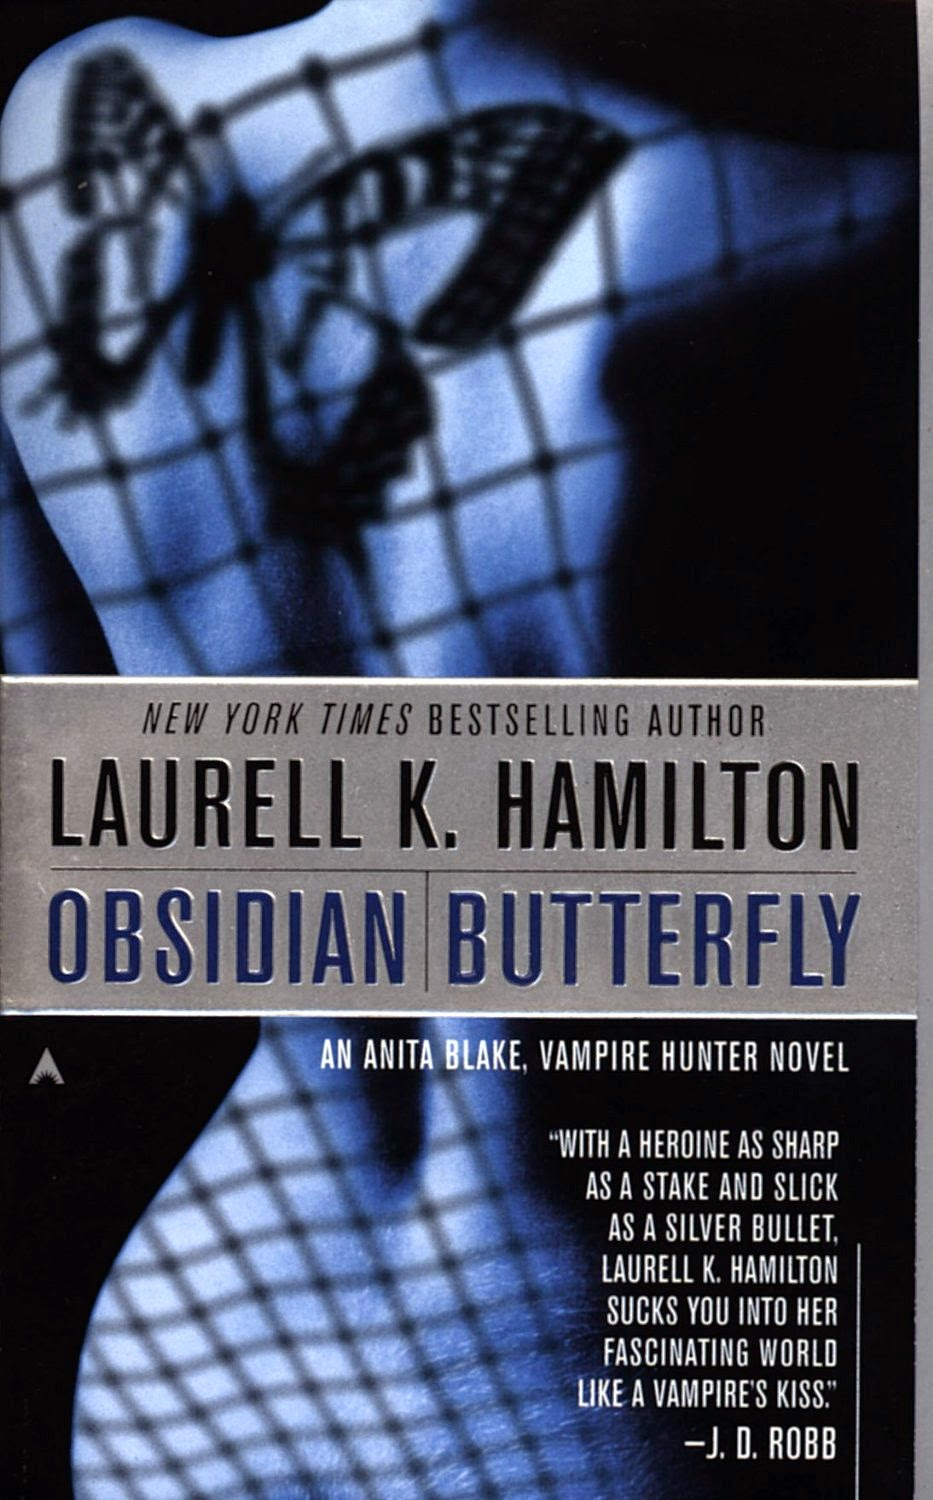 Hamilton beauty laurell pdf k